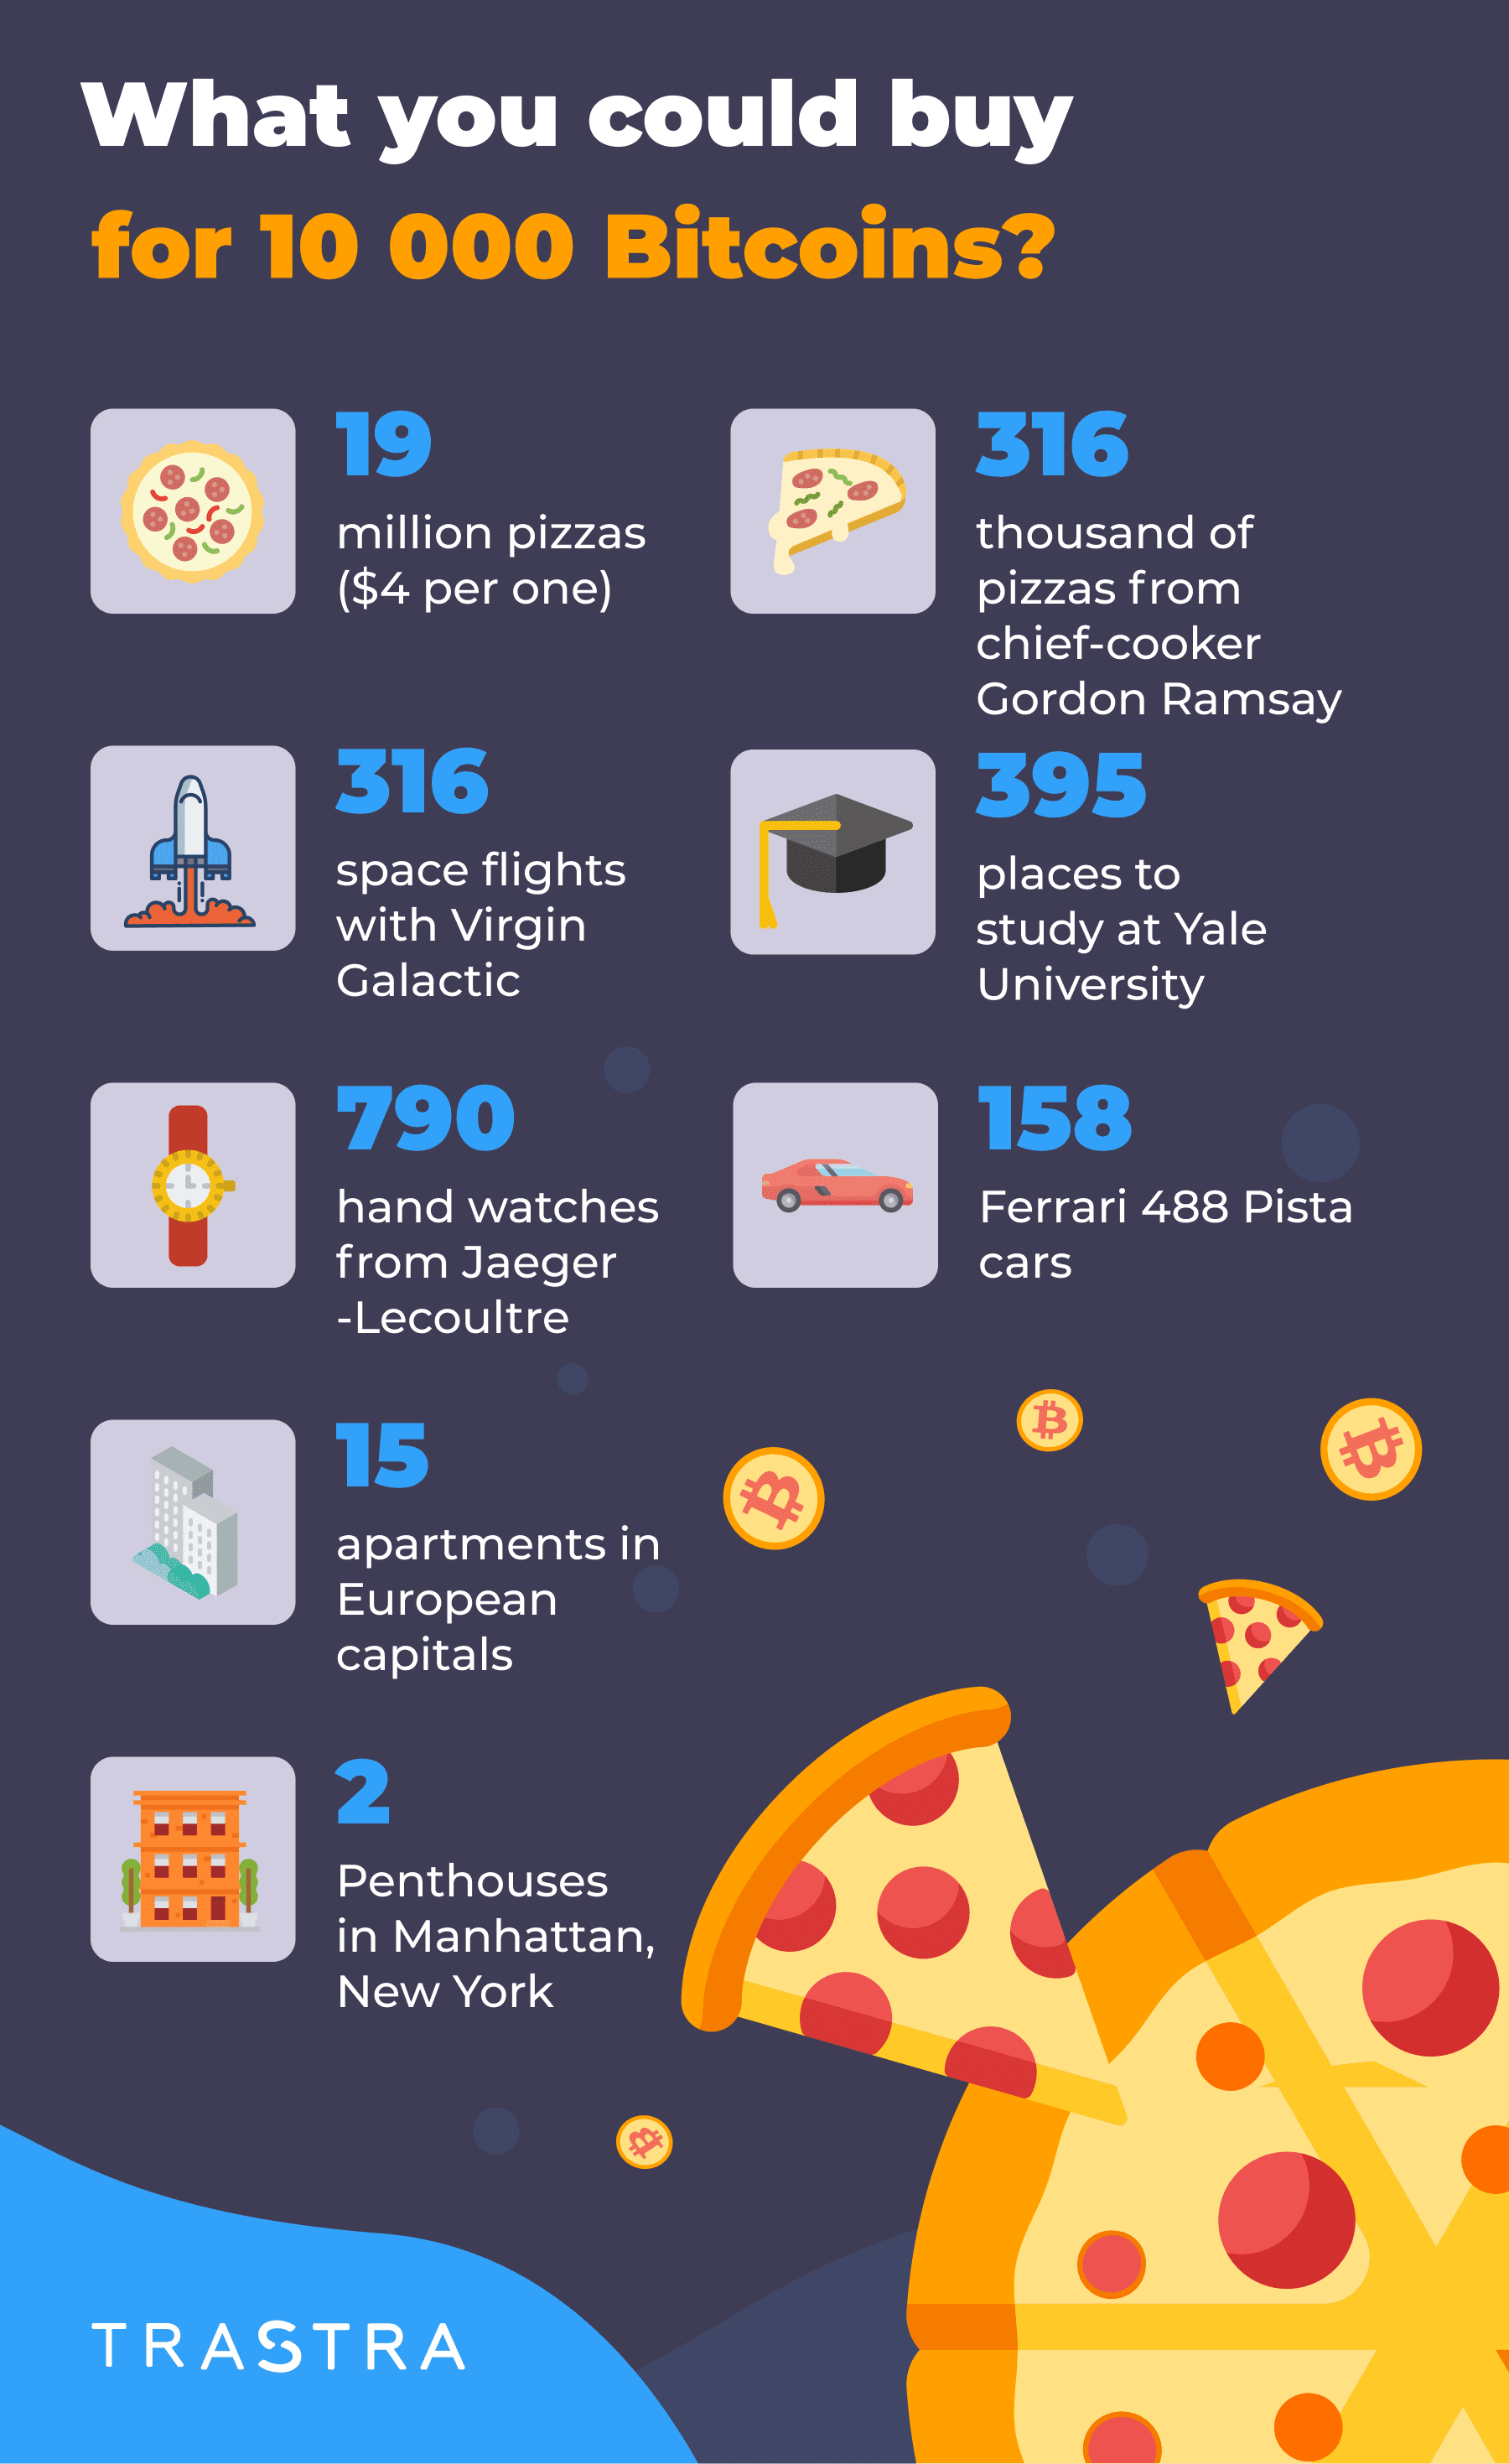 Bitcoin Pizza Day, 10K bitcoins, buy with bitcoins, infographic, what could buy, crypto, buy pizza with crypto